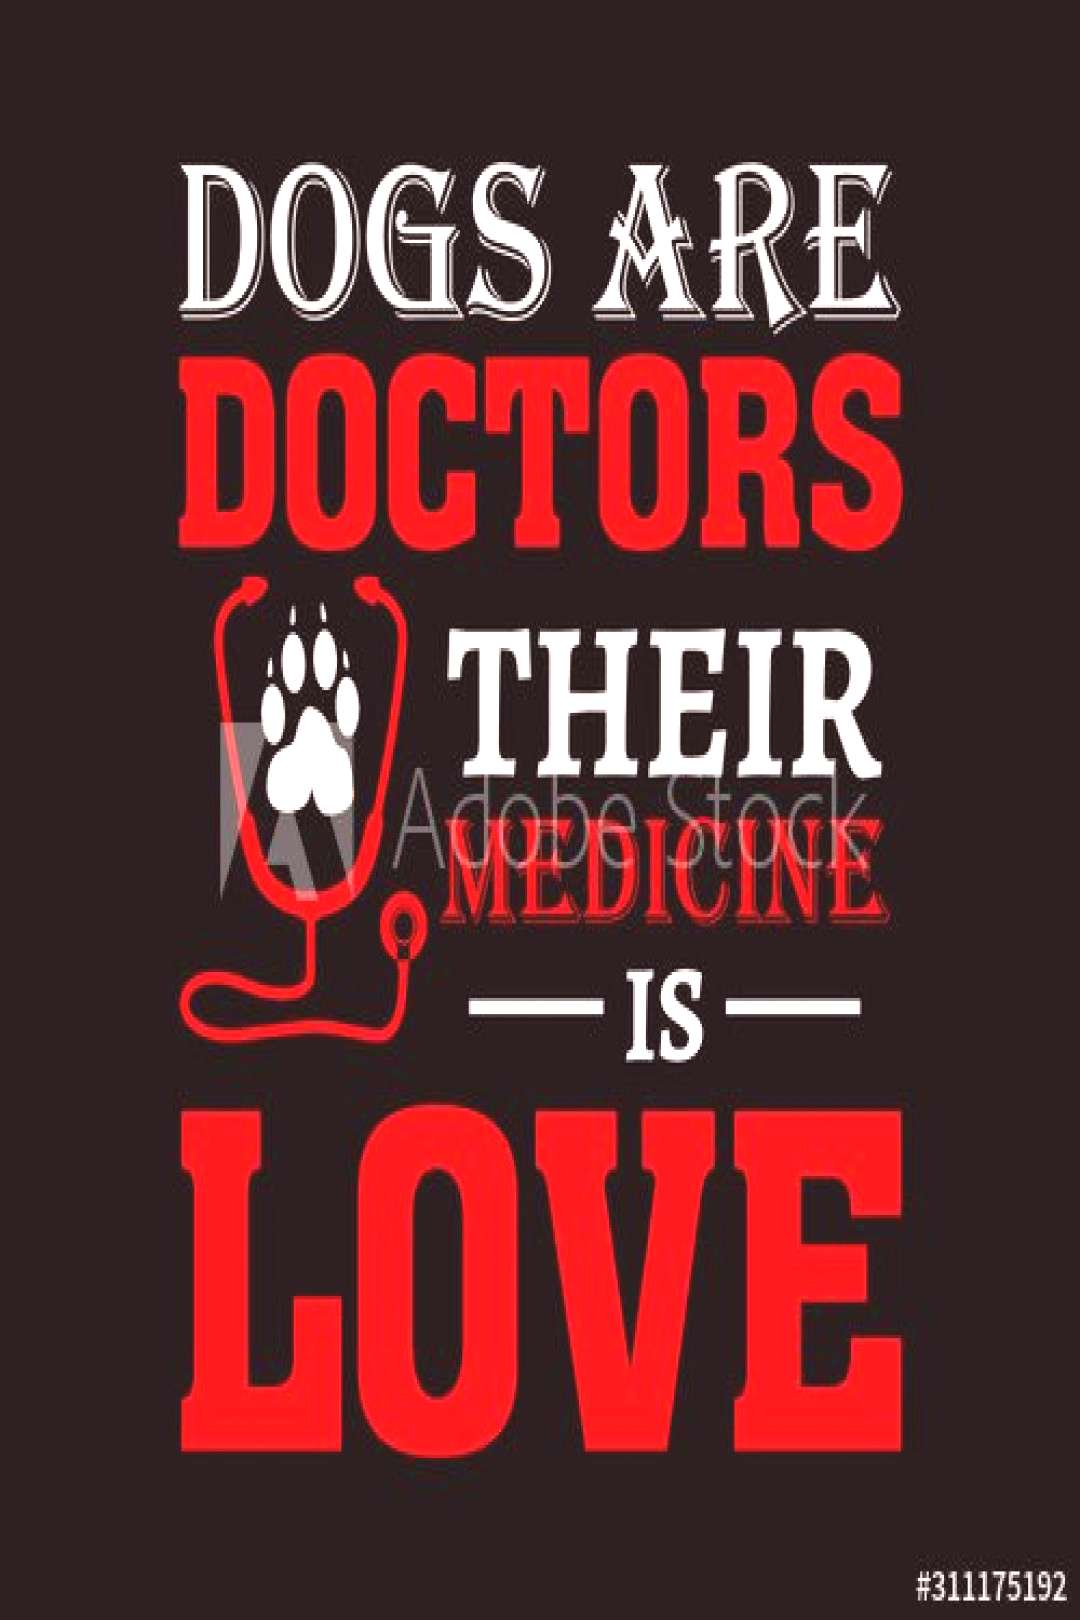 dog quote design - dogs are doctors their medicine is love - vector - design for t shirt. ,